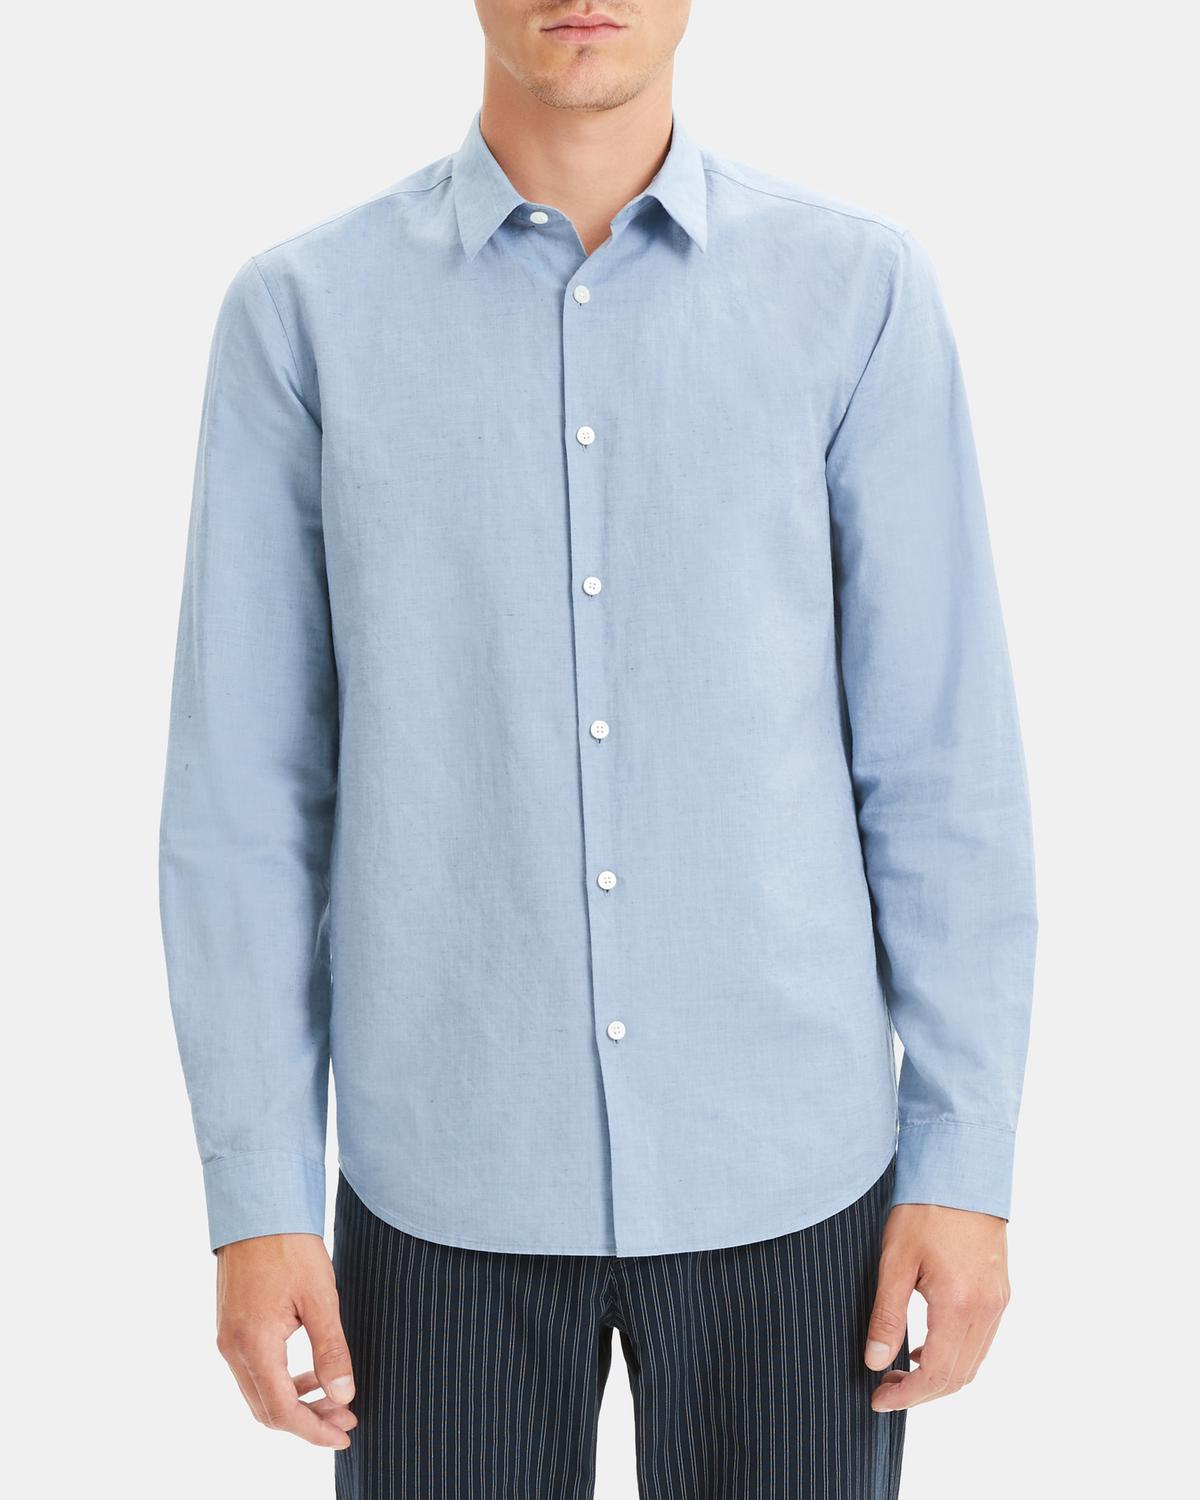 Essential Linen Irving Shirt